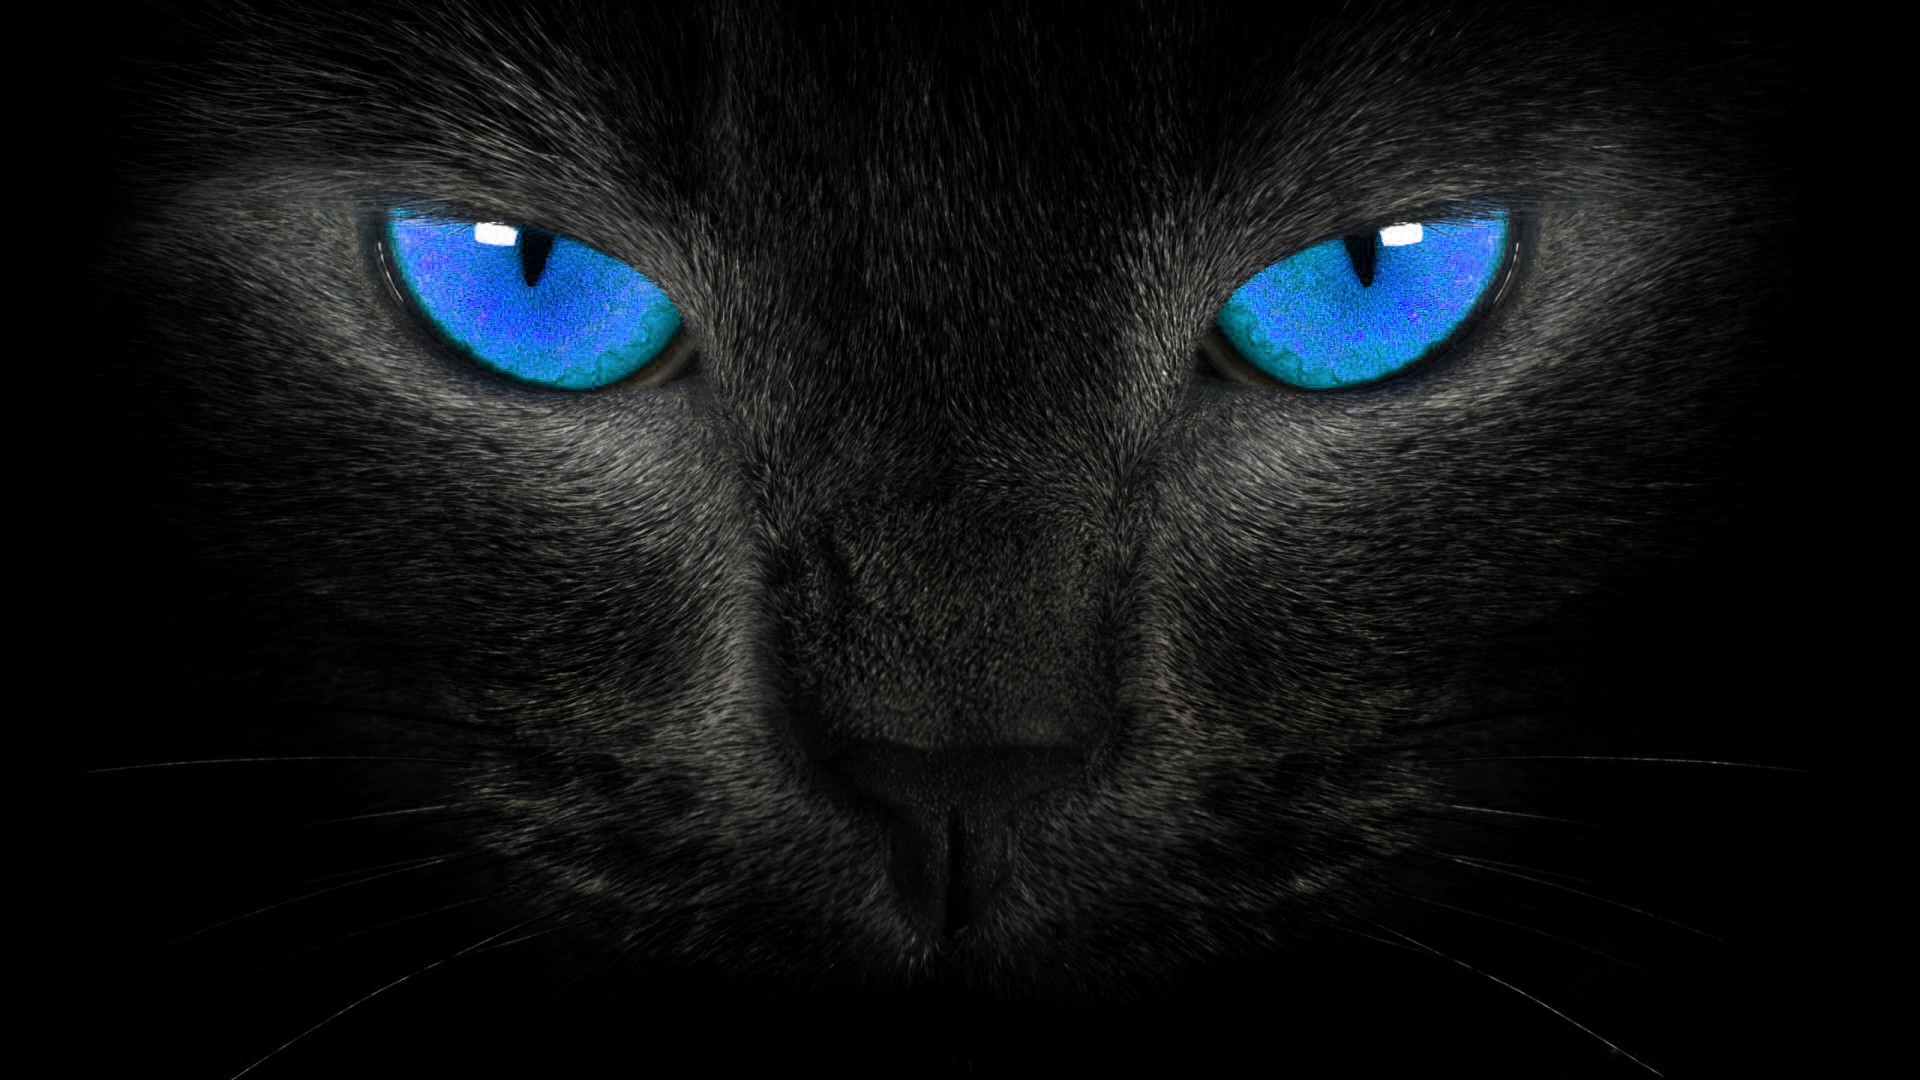 image - hd-wallpapers-blackblue-wallpaper-black-cat-blue-eyes